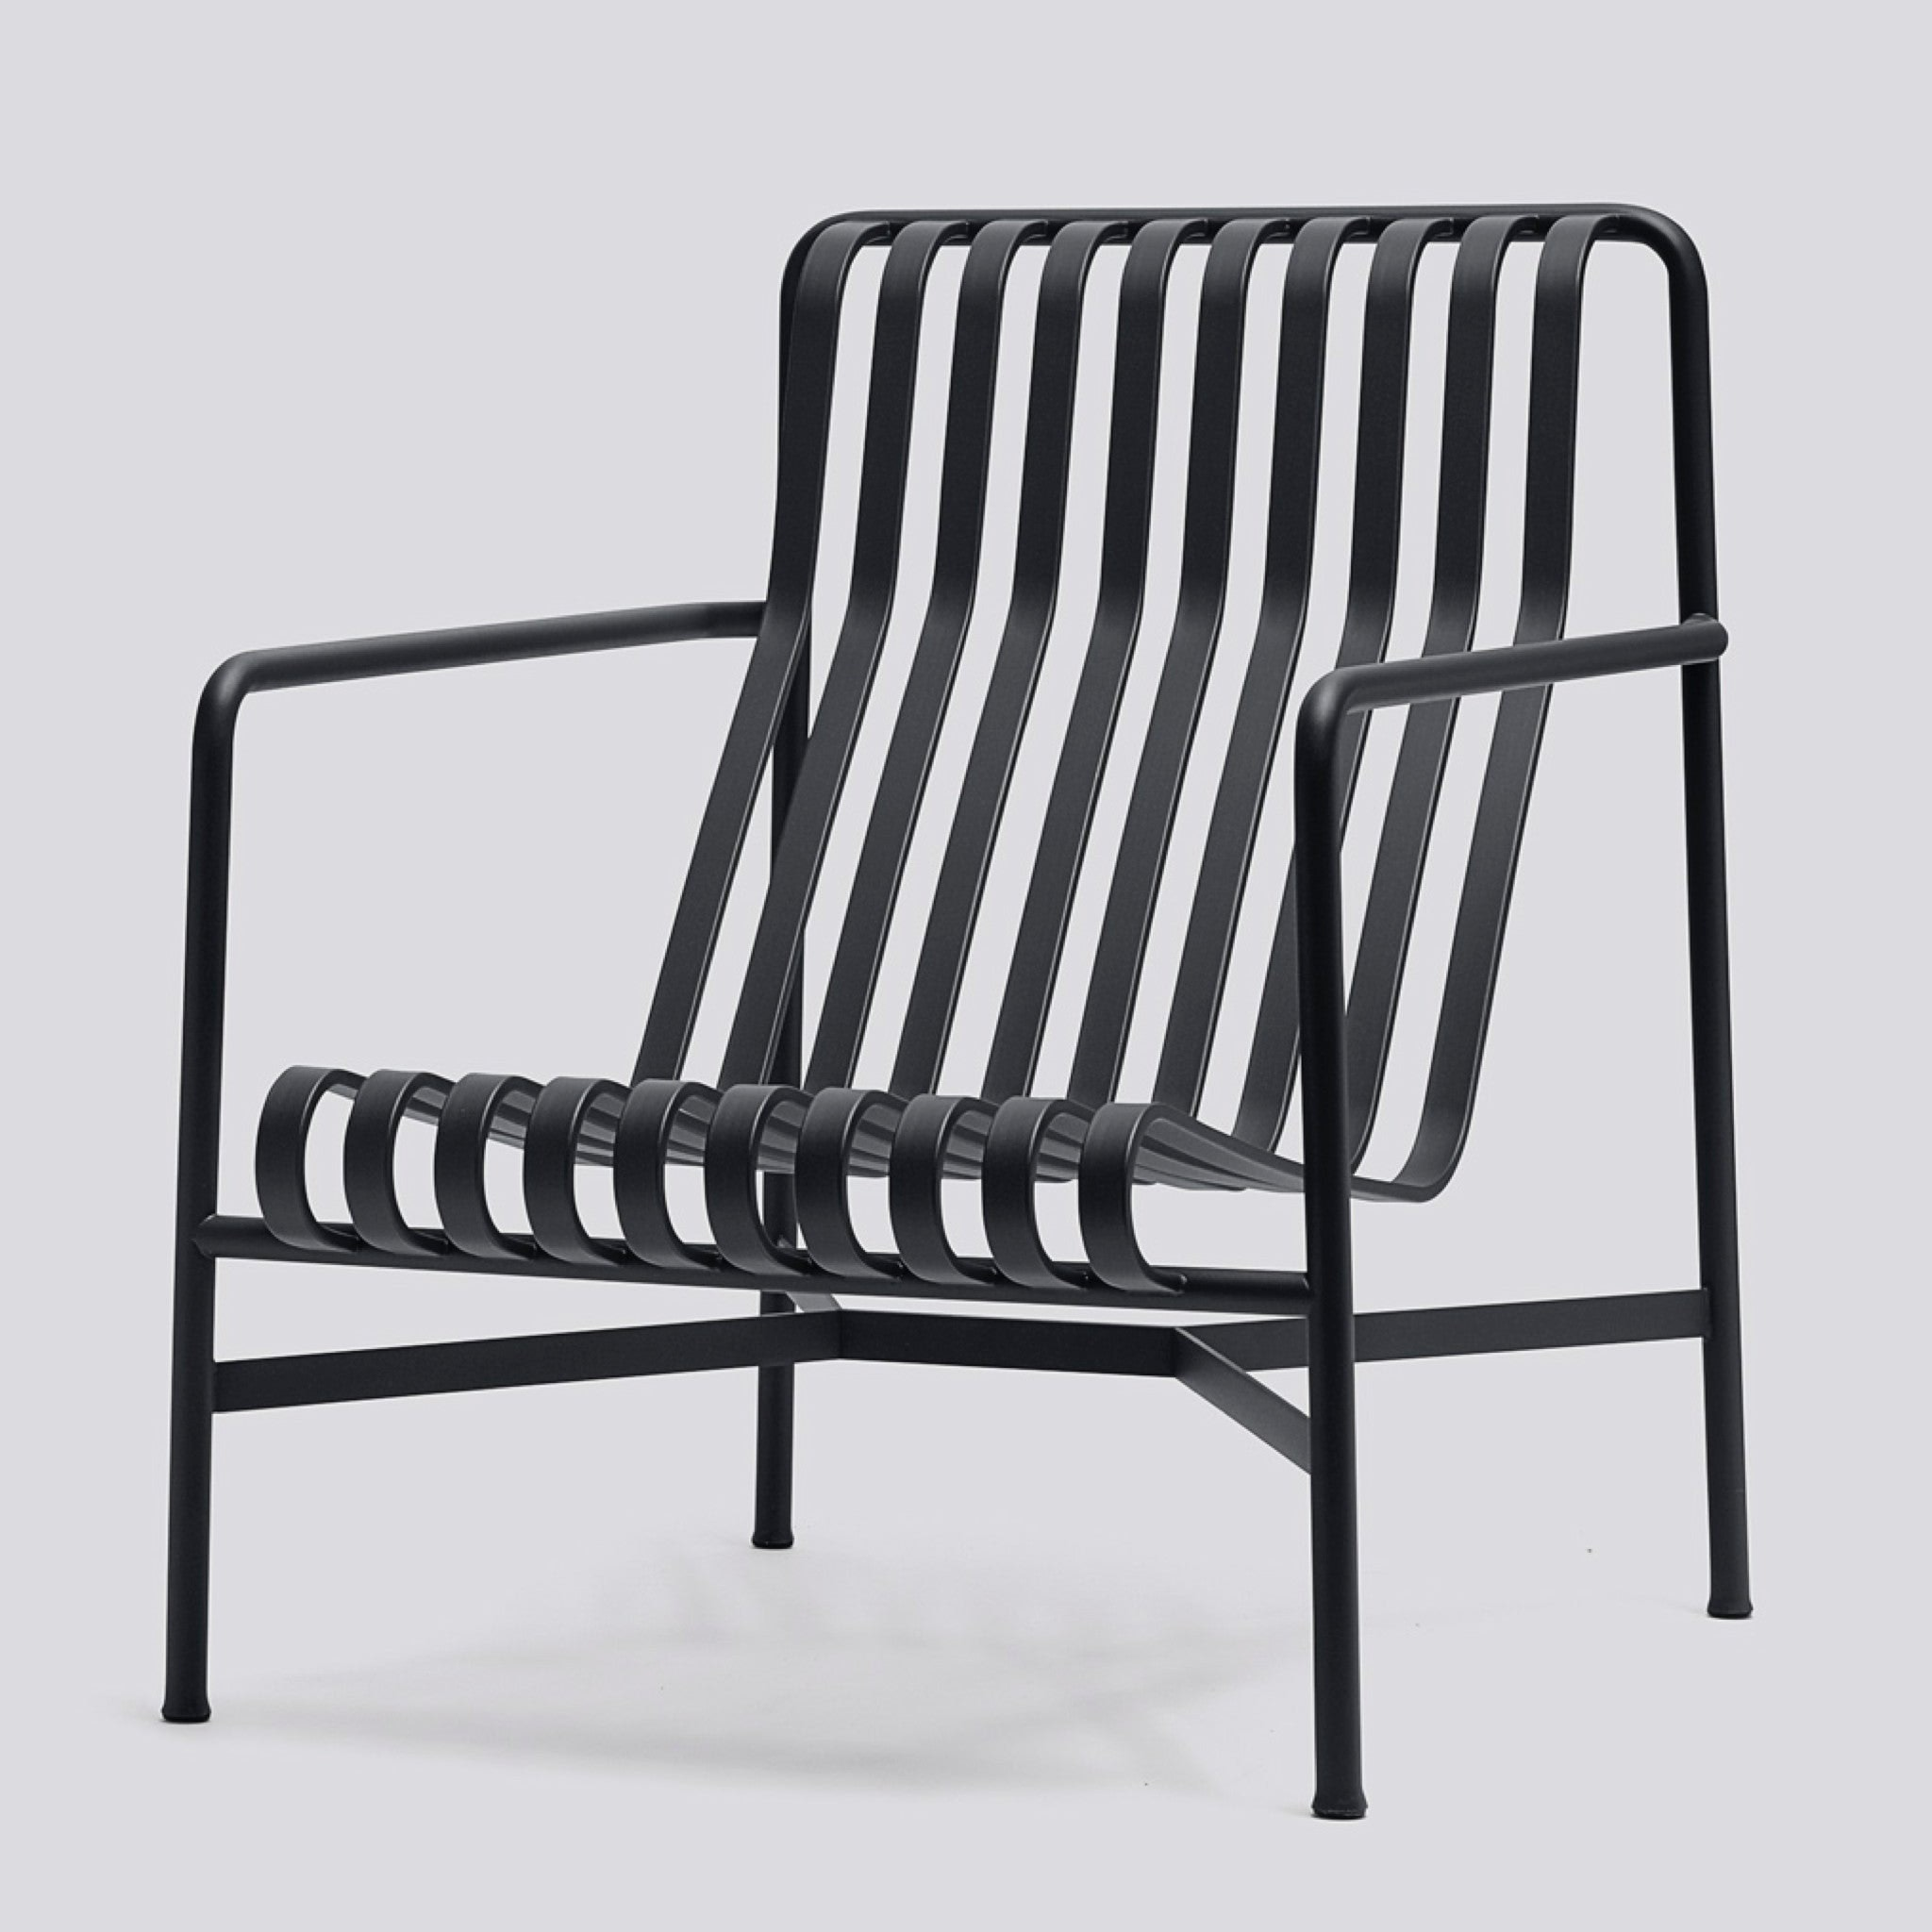 Palissade Lounge Chair High by Ronan and Erwan Bouroullec